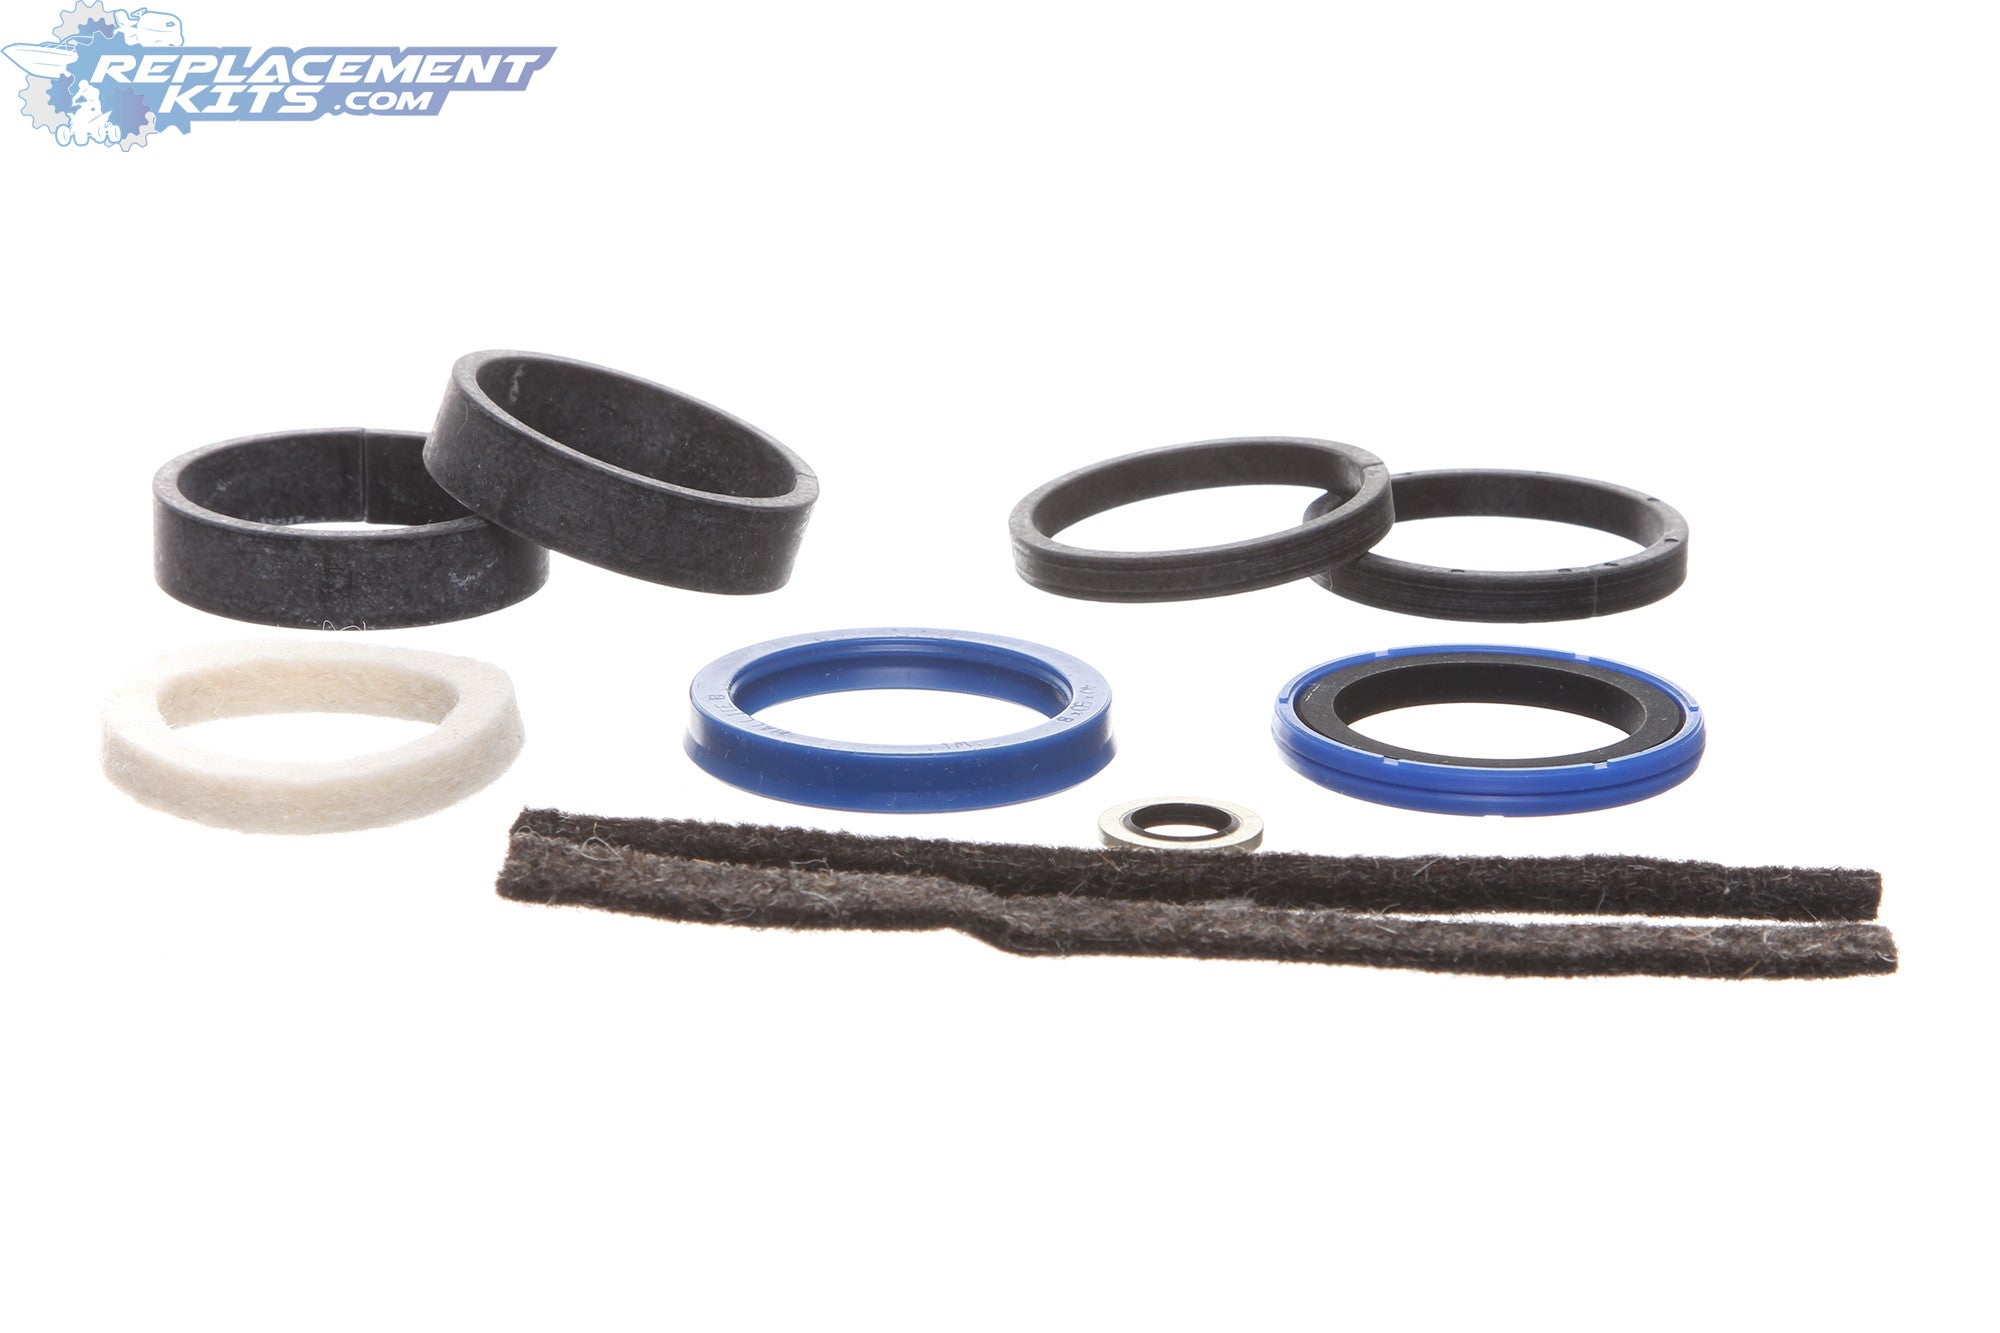 TP9 TP9KAC Duro Cylinder Seal Kit Tuxedo Lifts Equivalent to TP9-1057  for TP9